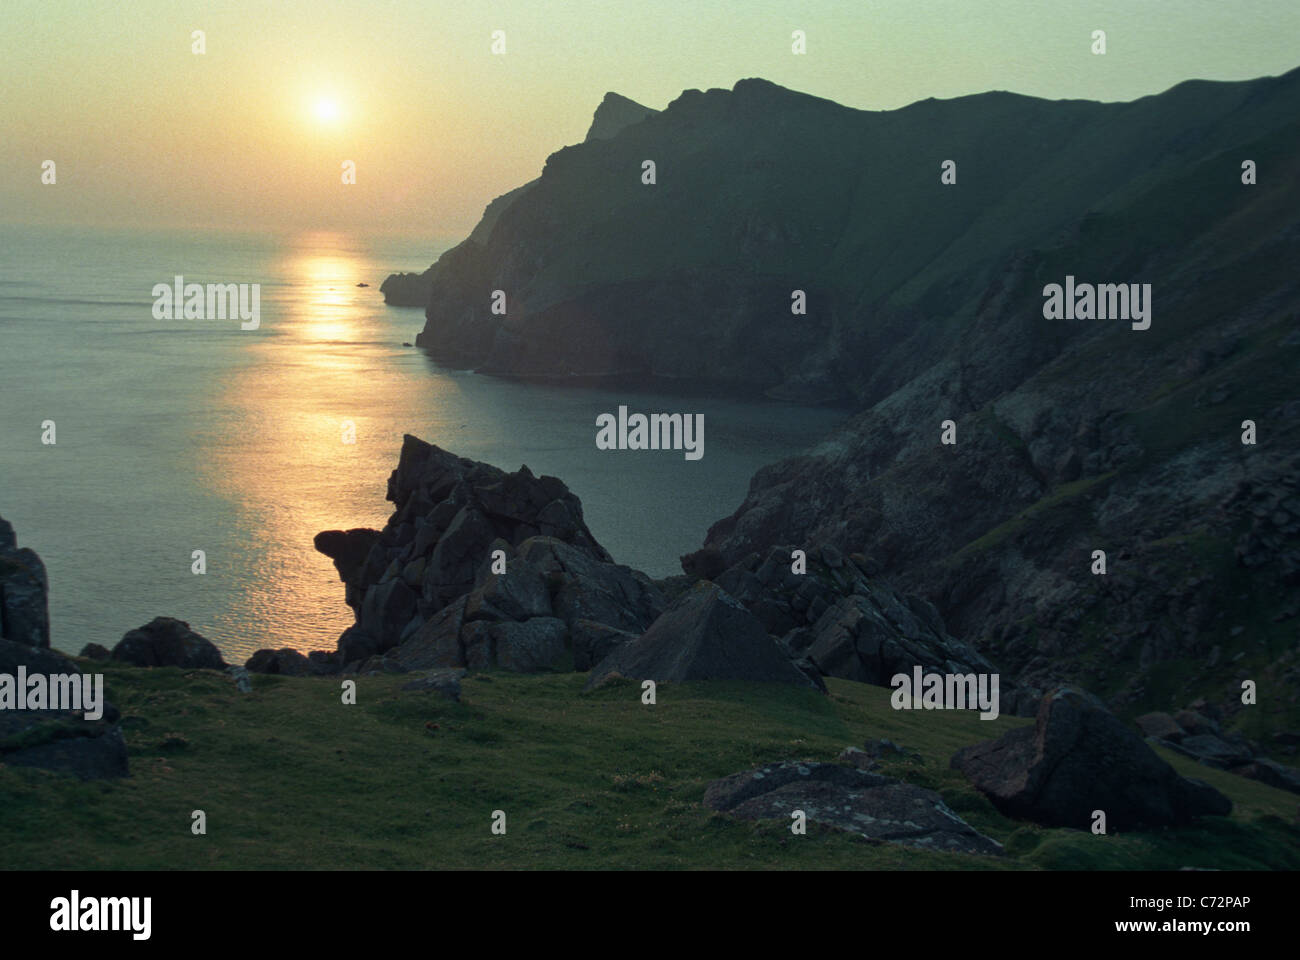 The island of Hirta in St Kilda, in the Outer Hebrides, Scotland. - Stock Image